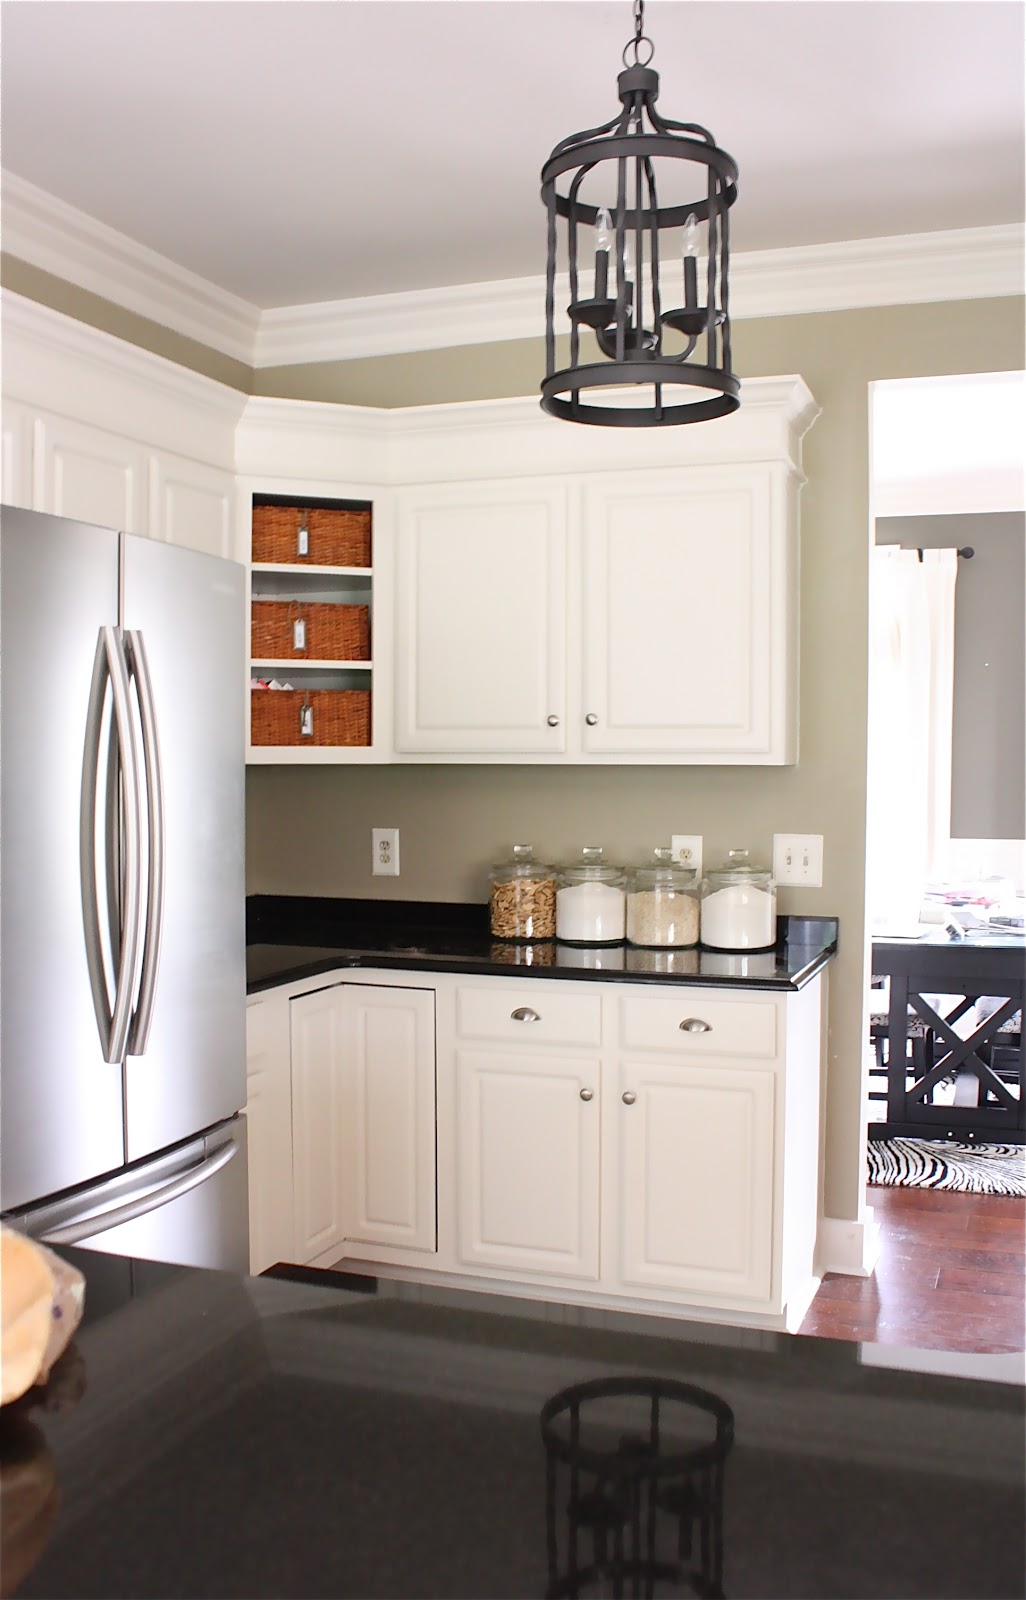 Cape Cod Kitchen The Yellow Cape Cod My Kitchen Makeover Details And Product Sources